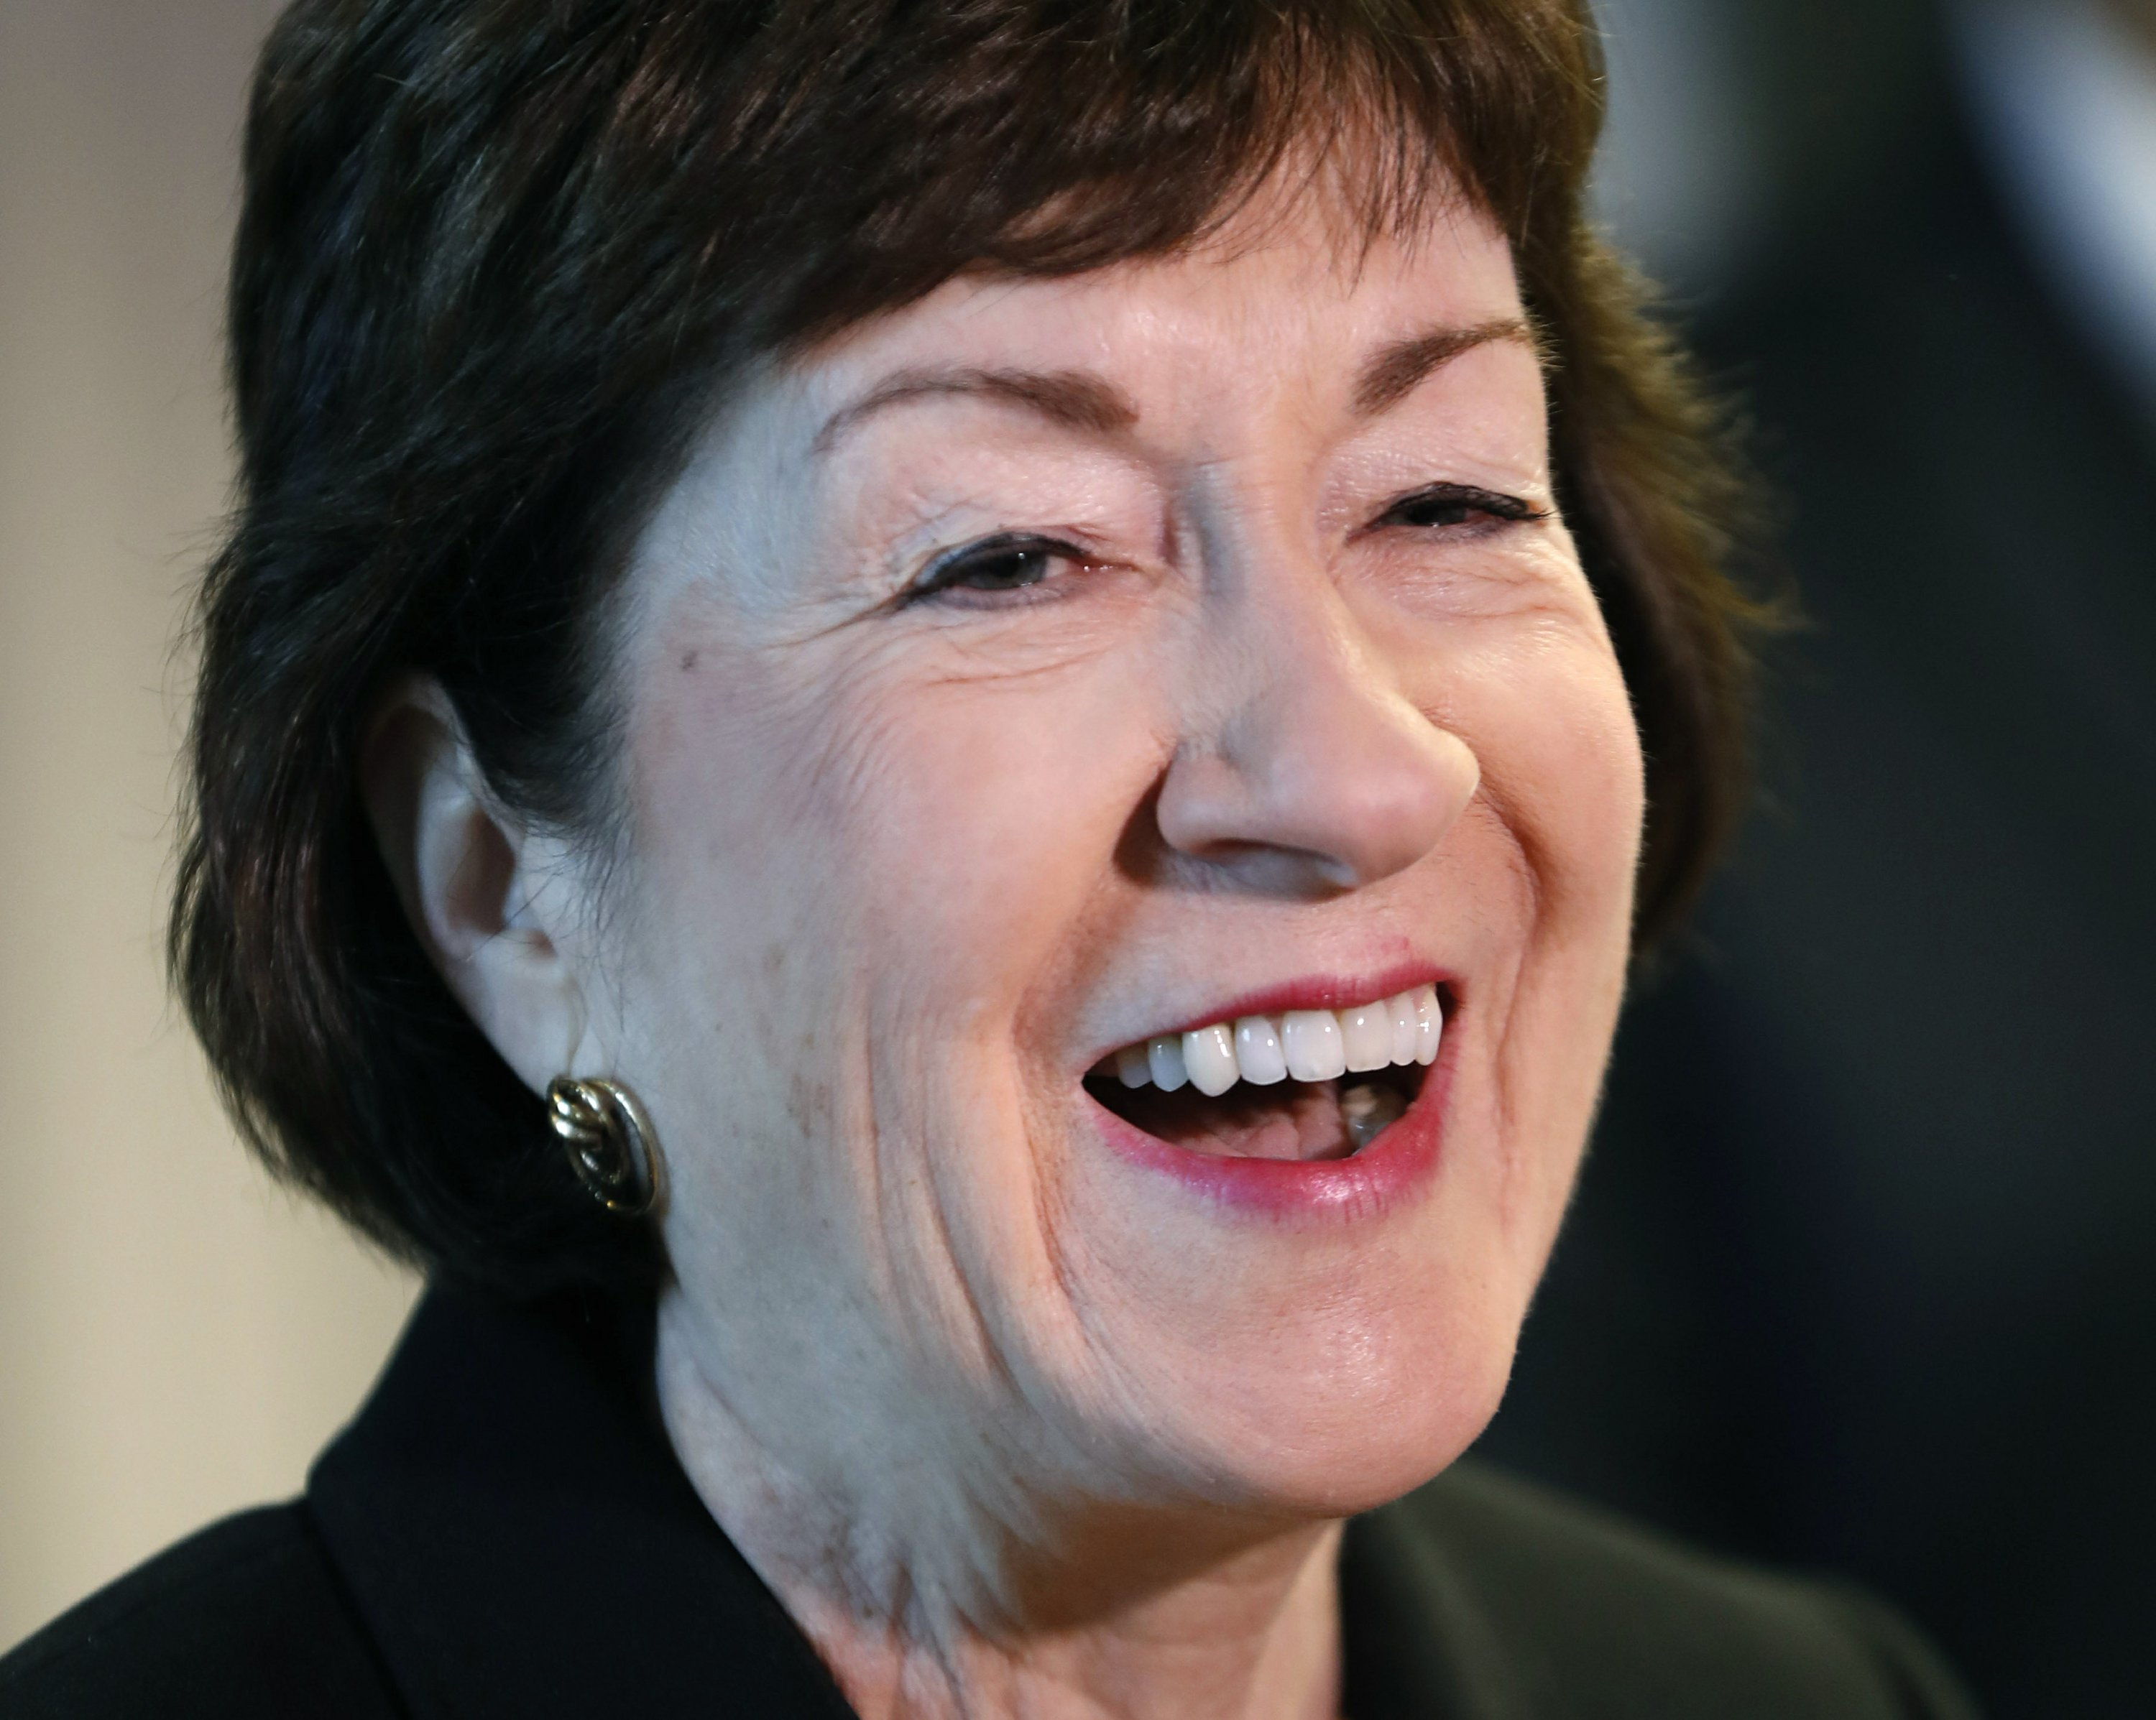 GOP's Collins not running for governor, will stay in Senate